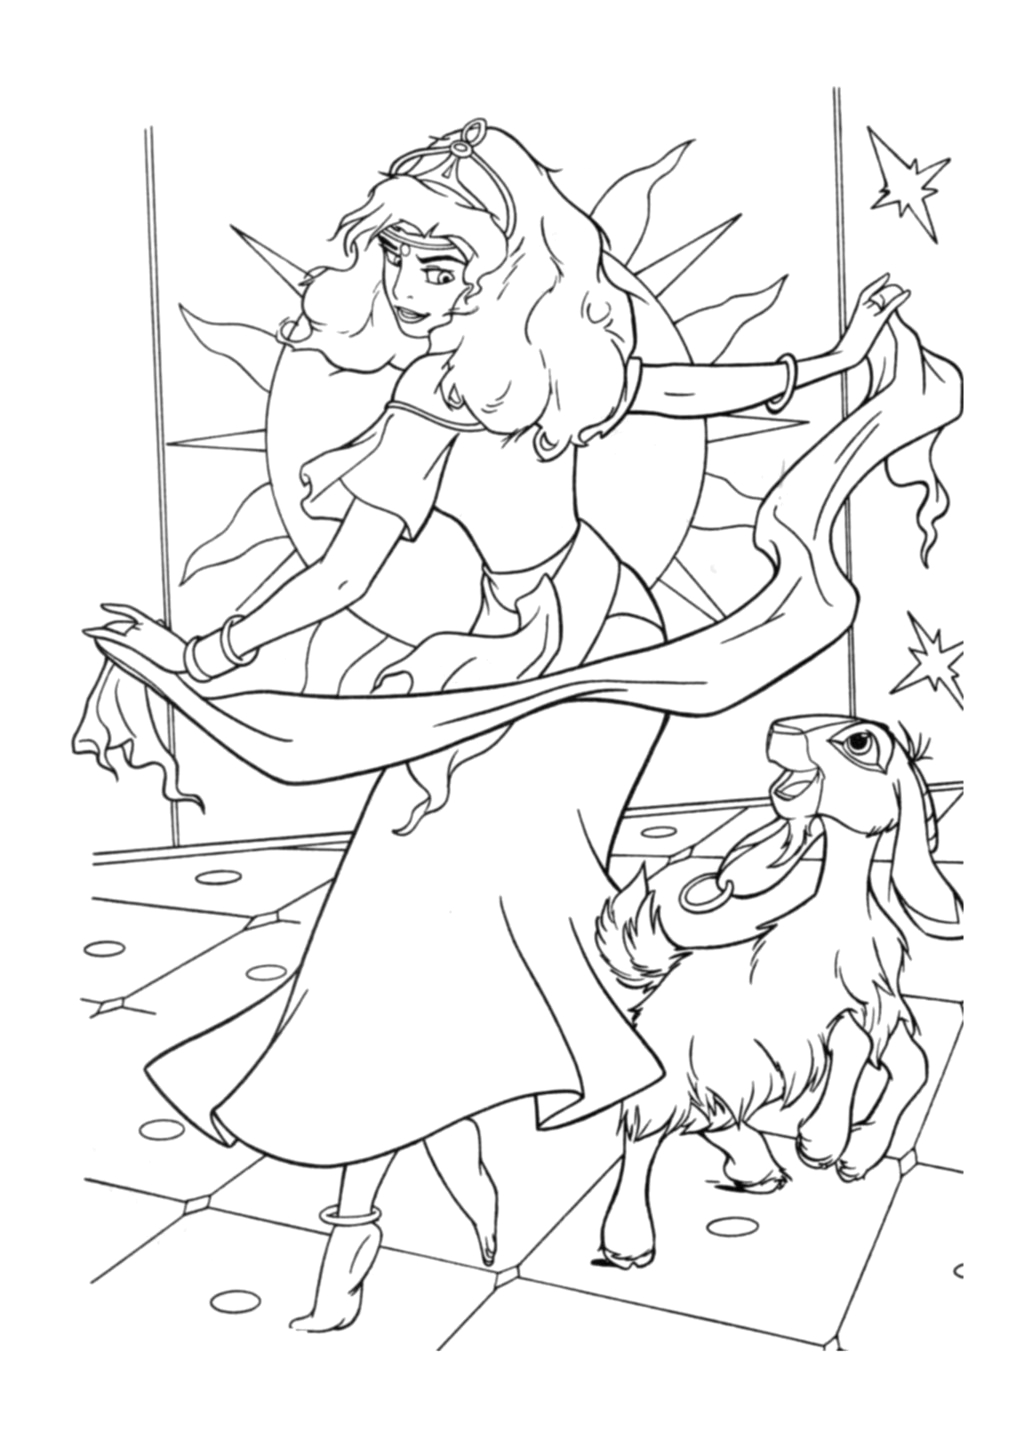 The Hunchback Of Notre Dame Coloring Pages the Hunchback Of Notre Dame to the Hunchback